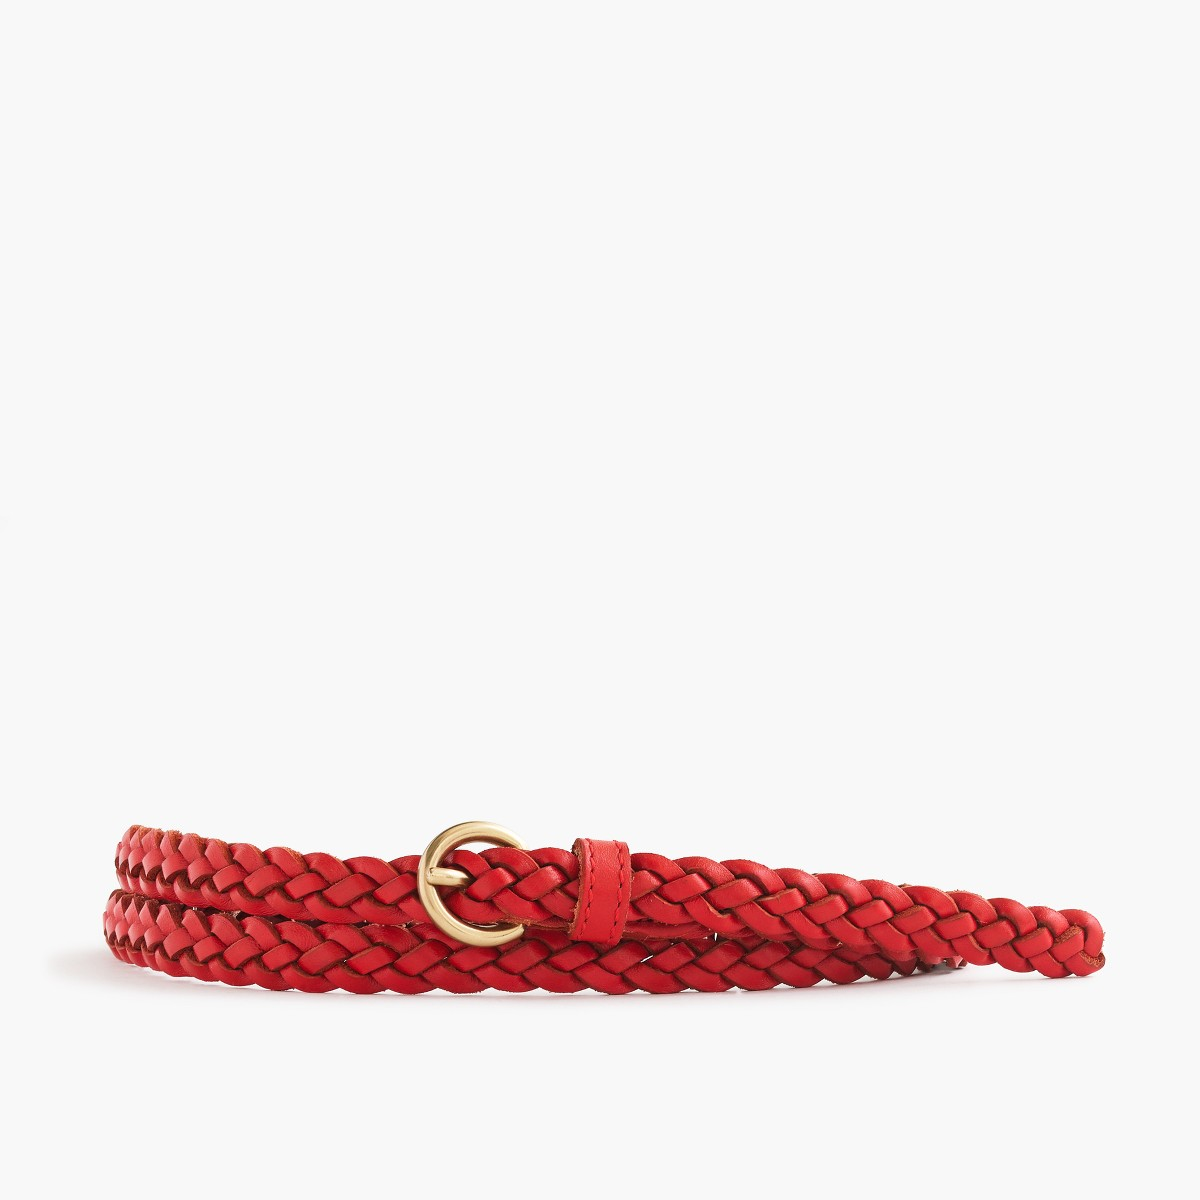 美国代购 j*crew 编织腰带 Skinny braided leather belt